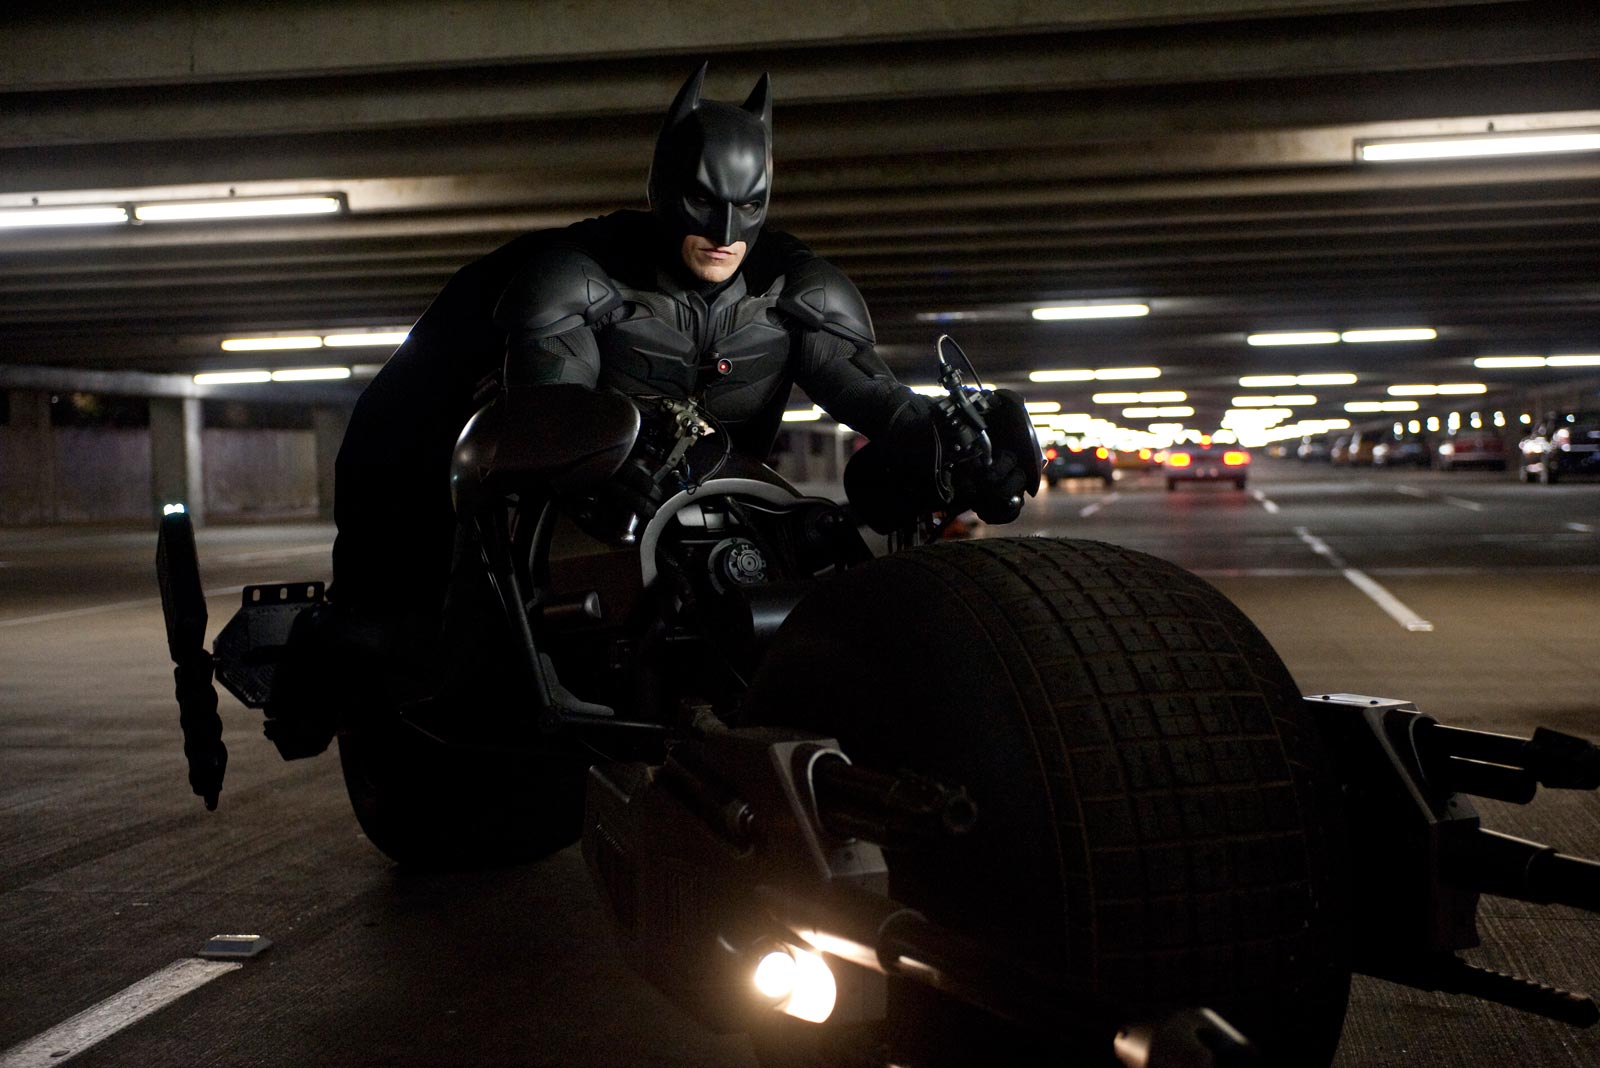 The Dark Knight Rises Still-Batman on Bat-Pod